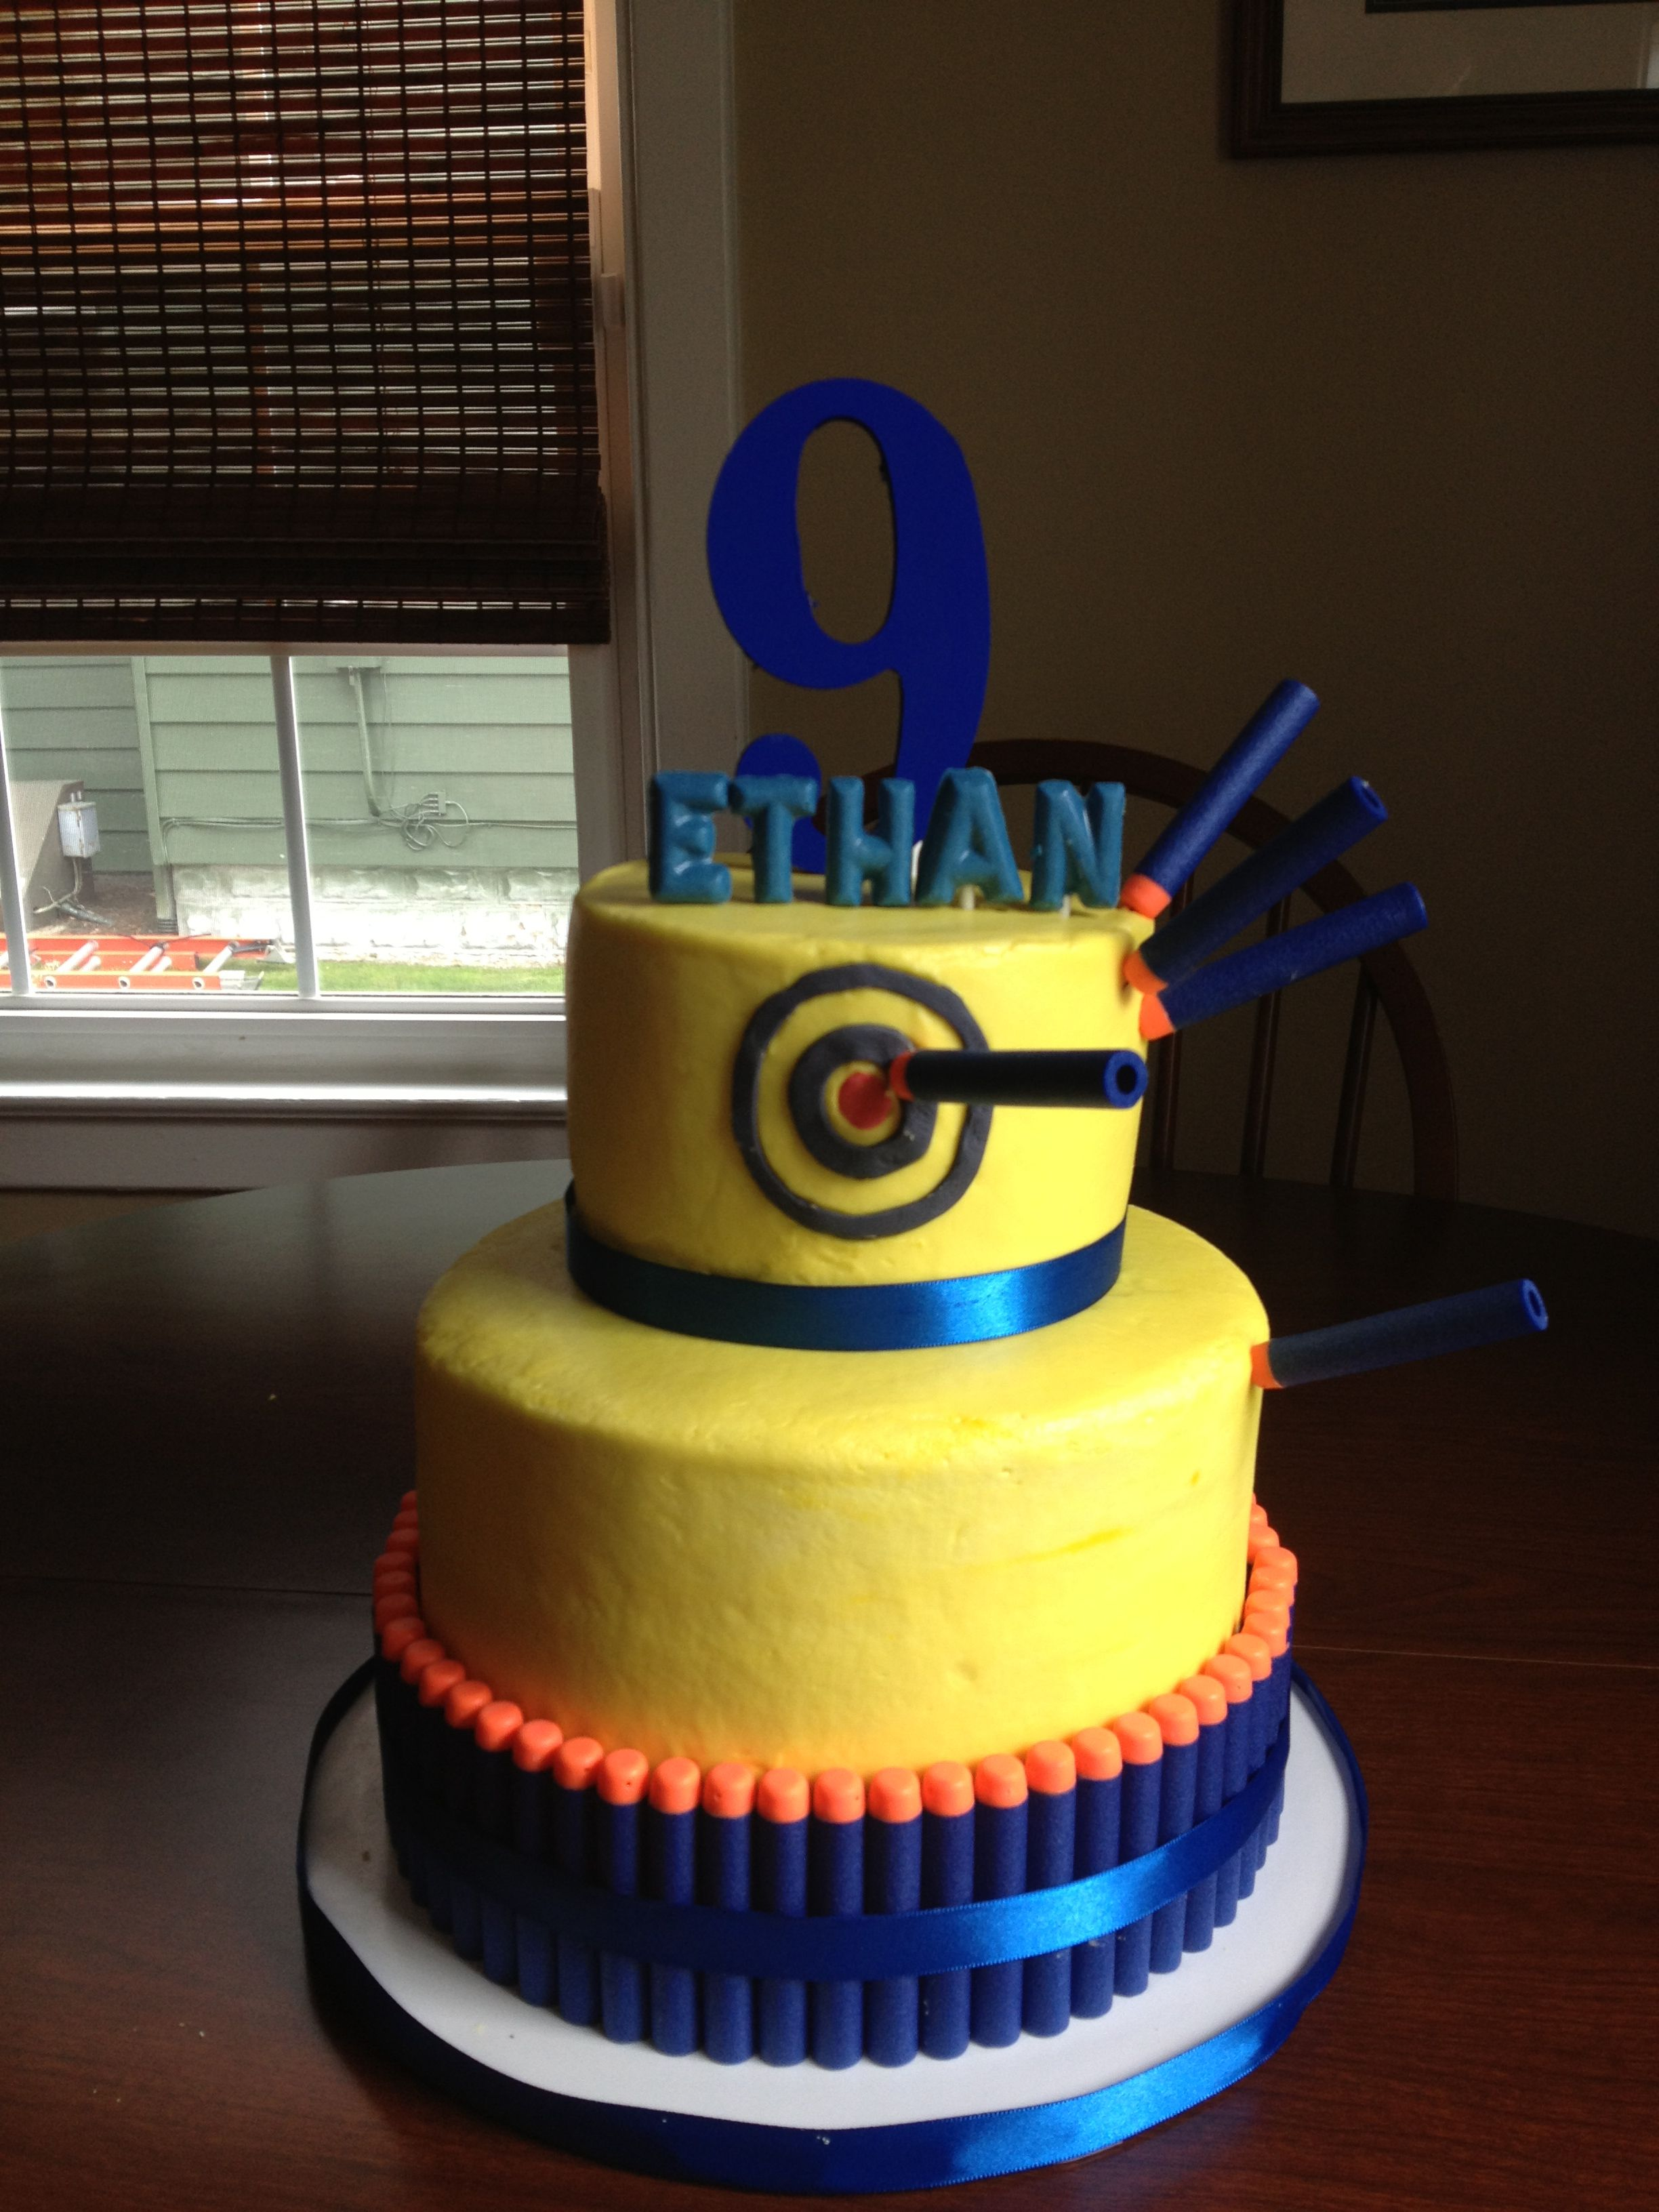 nerf birthday cake 9 triple layer cake w 6 topper wooden 9 and chocolate name letters nerf darts placed around base cake secured with blue ribbon